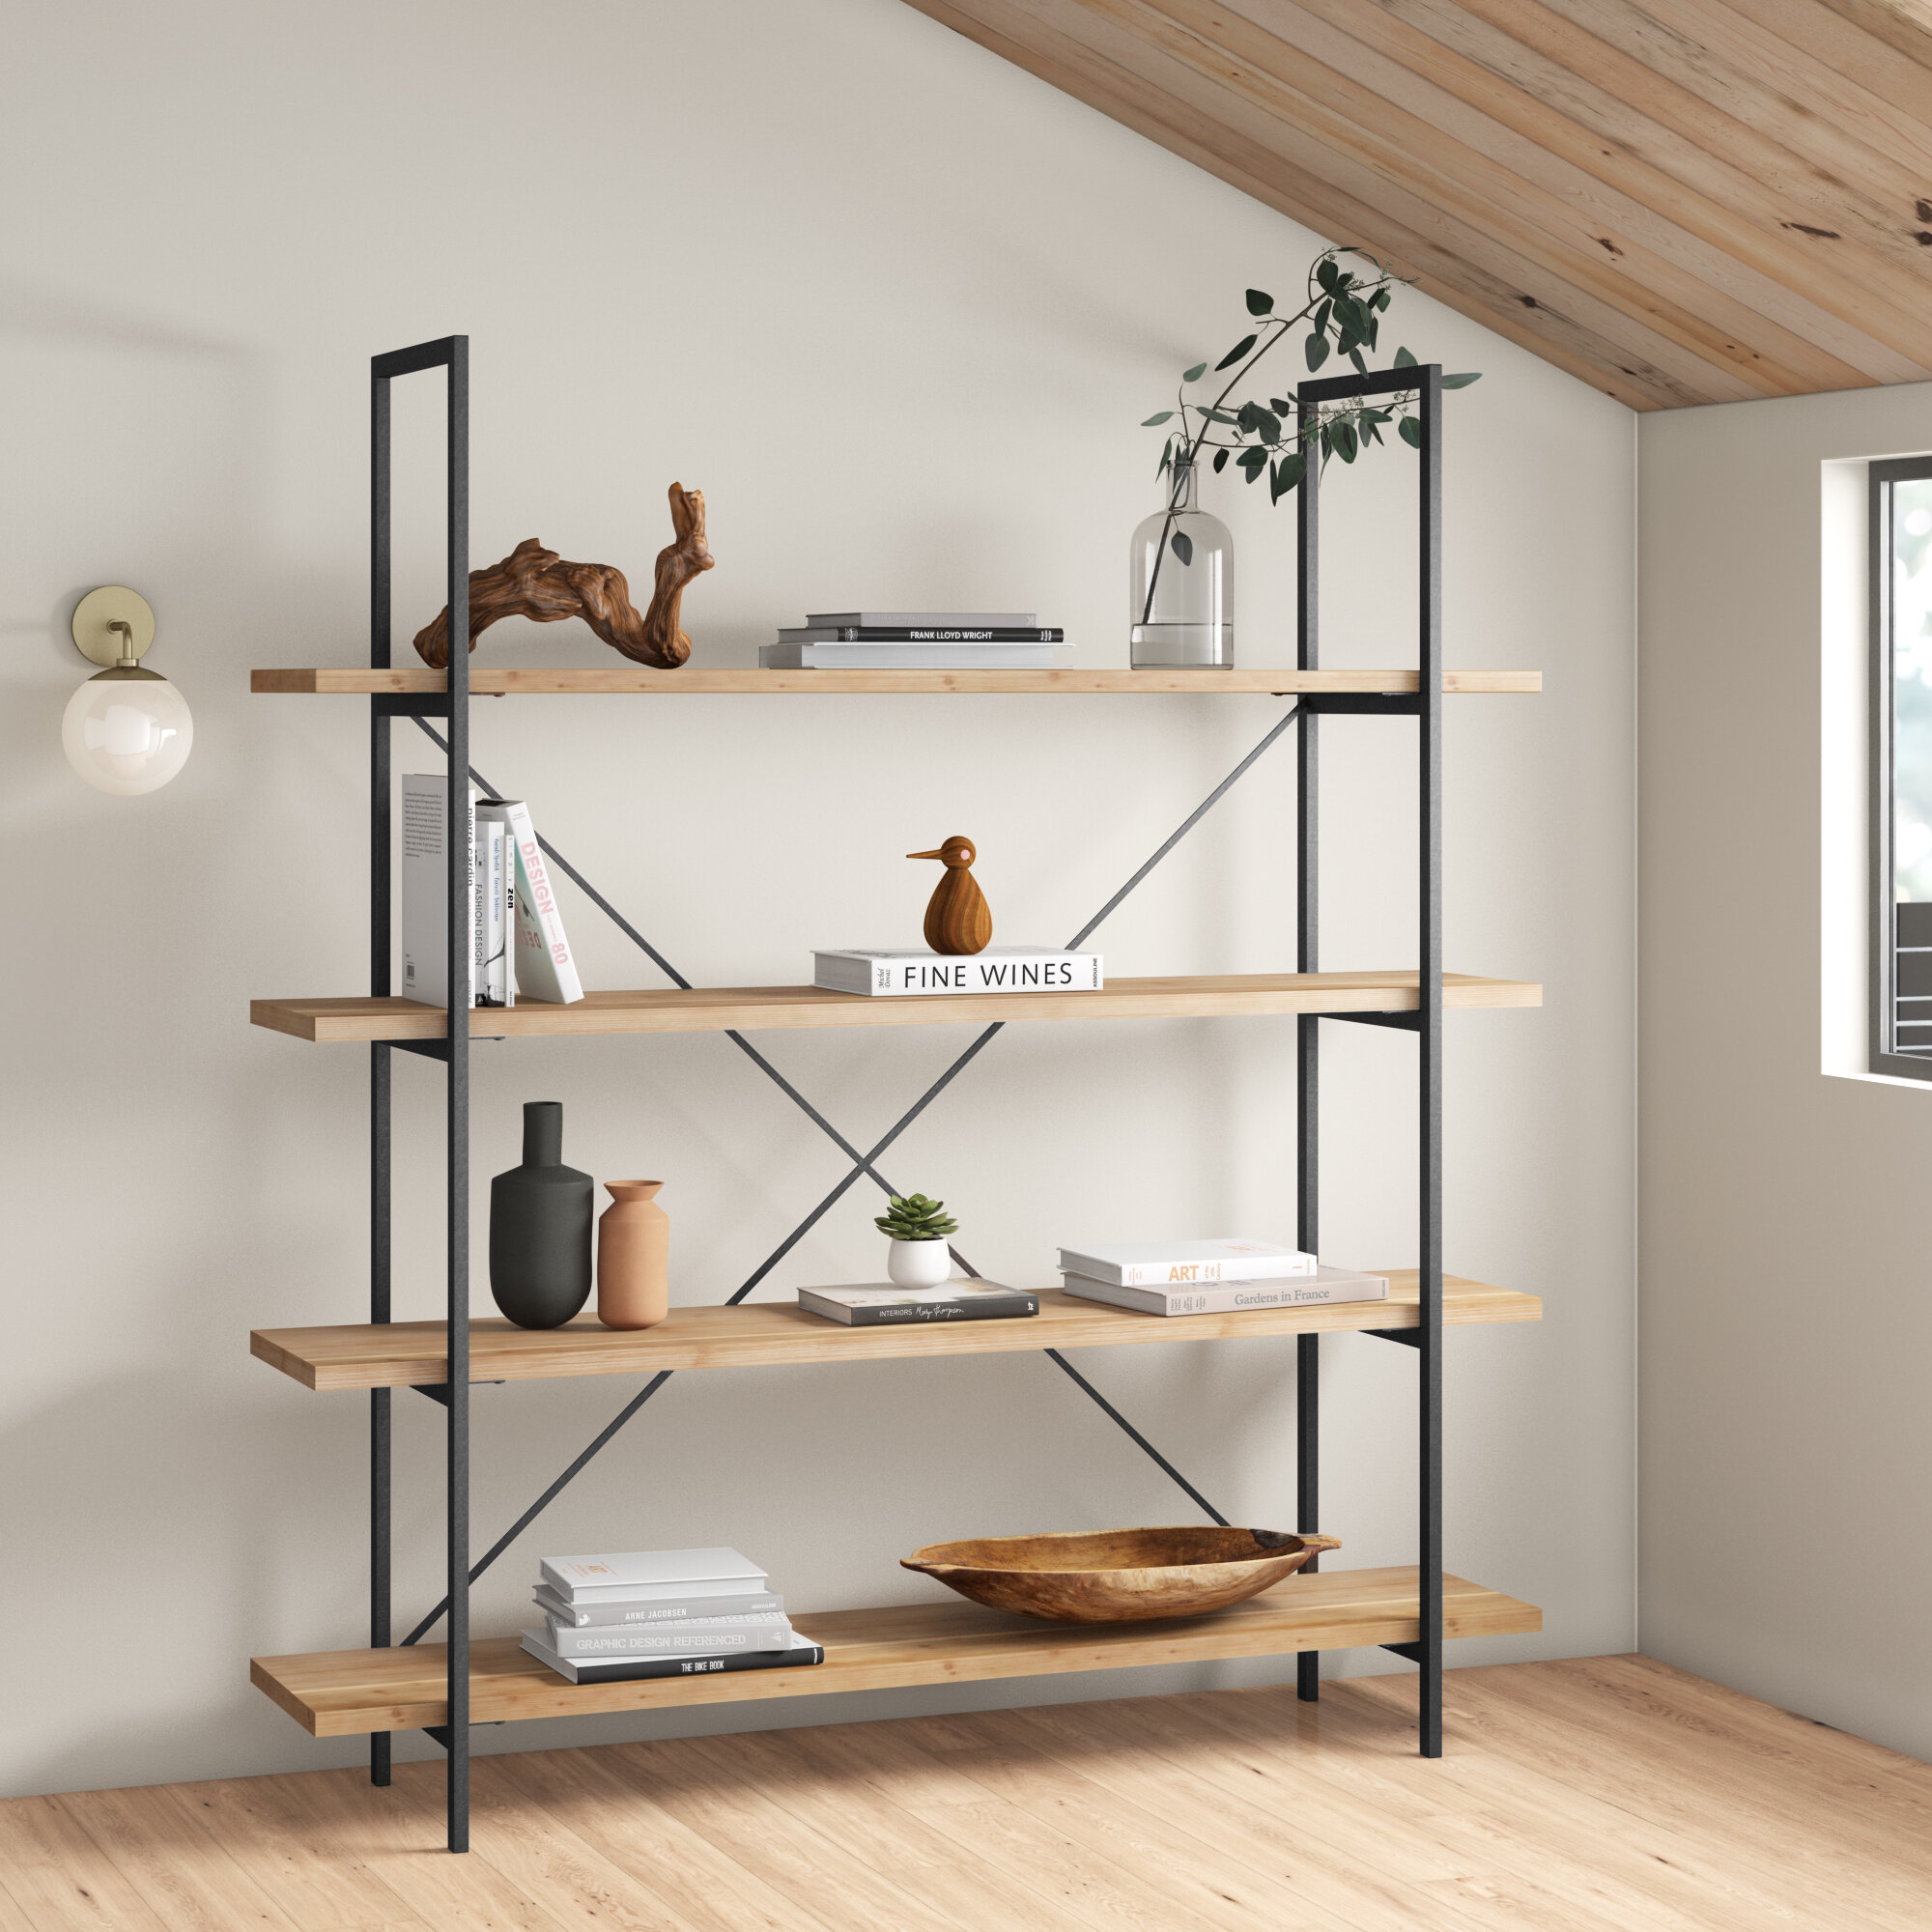 5-Shelf 59 in Tall Wood Bookcase Black Brown White or Natural